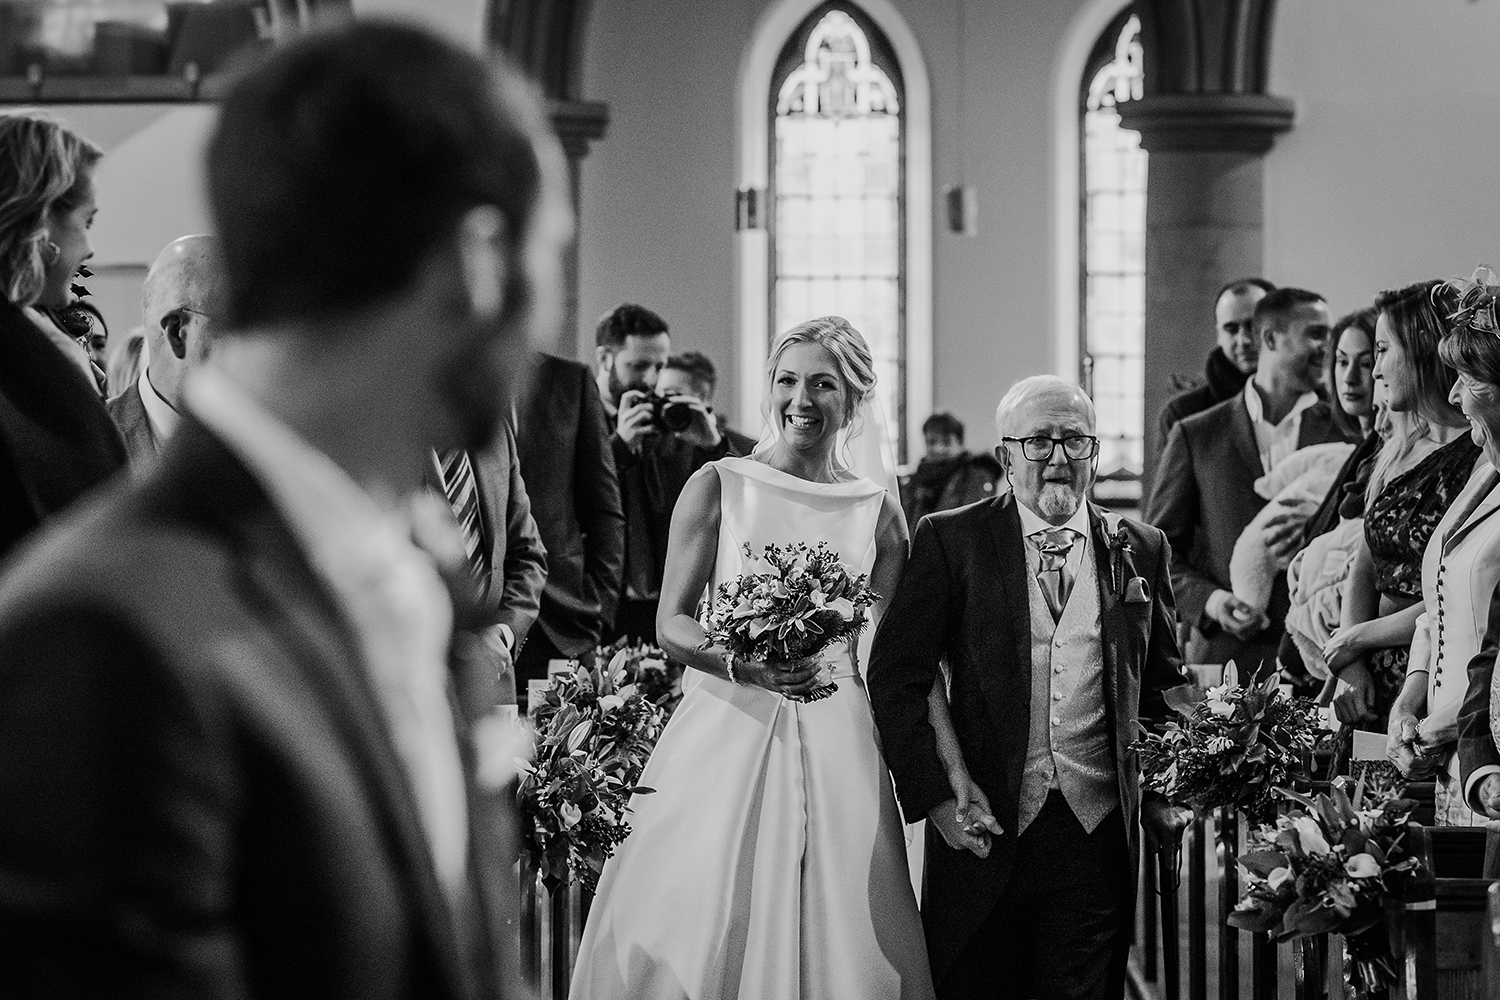 bride smiles at groom as she walks down the aisle with her father. Black and white photo